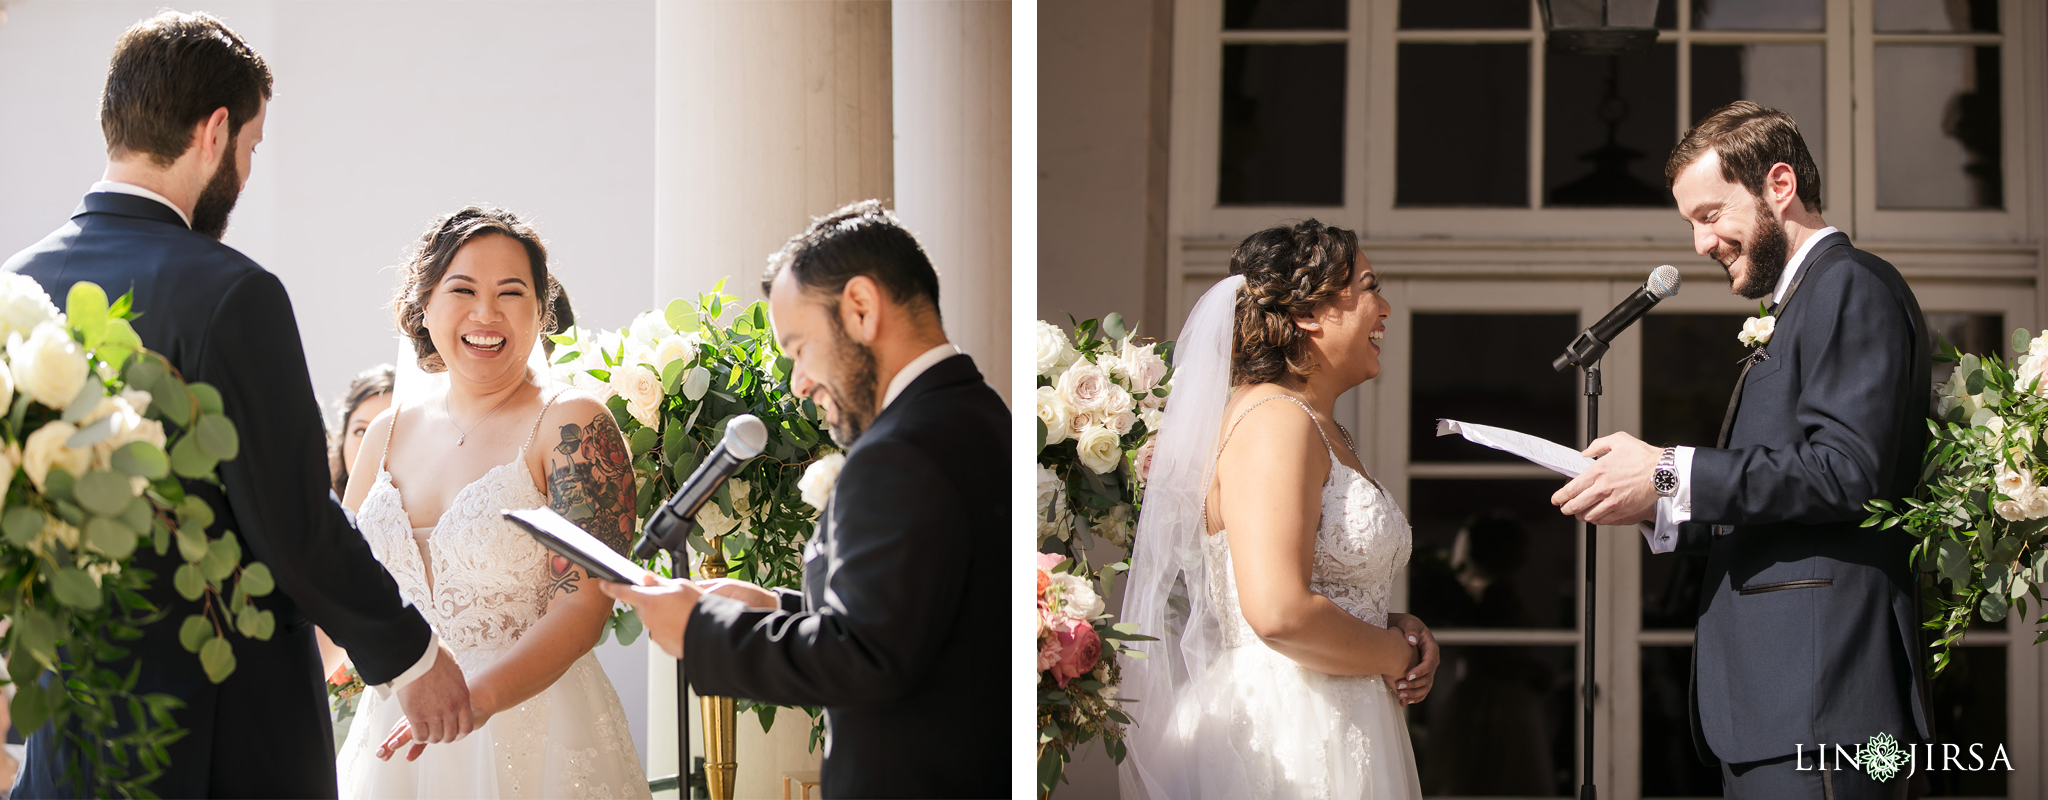 78 The Ebell Los Angeles Wedding Photography